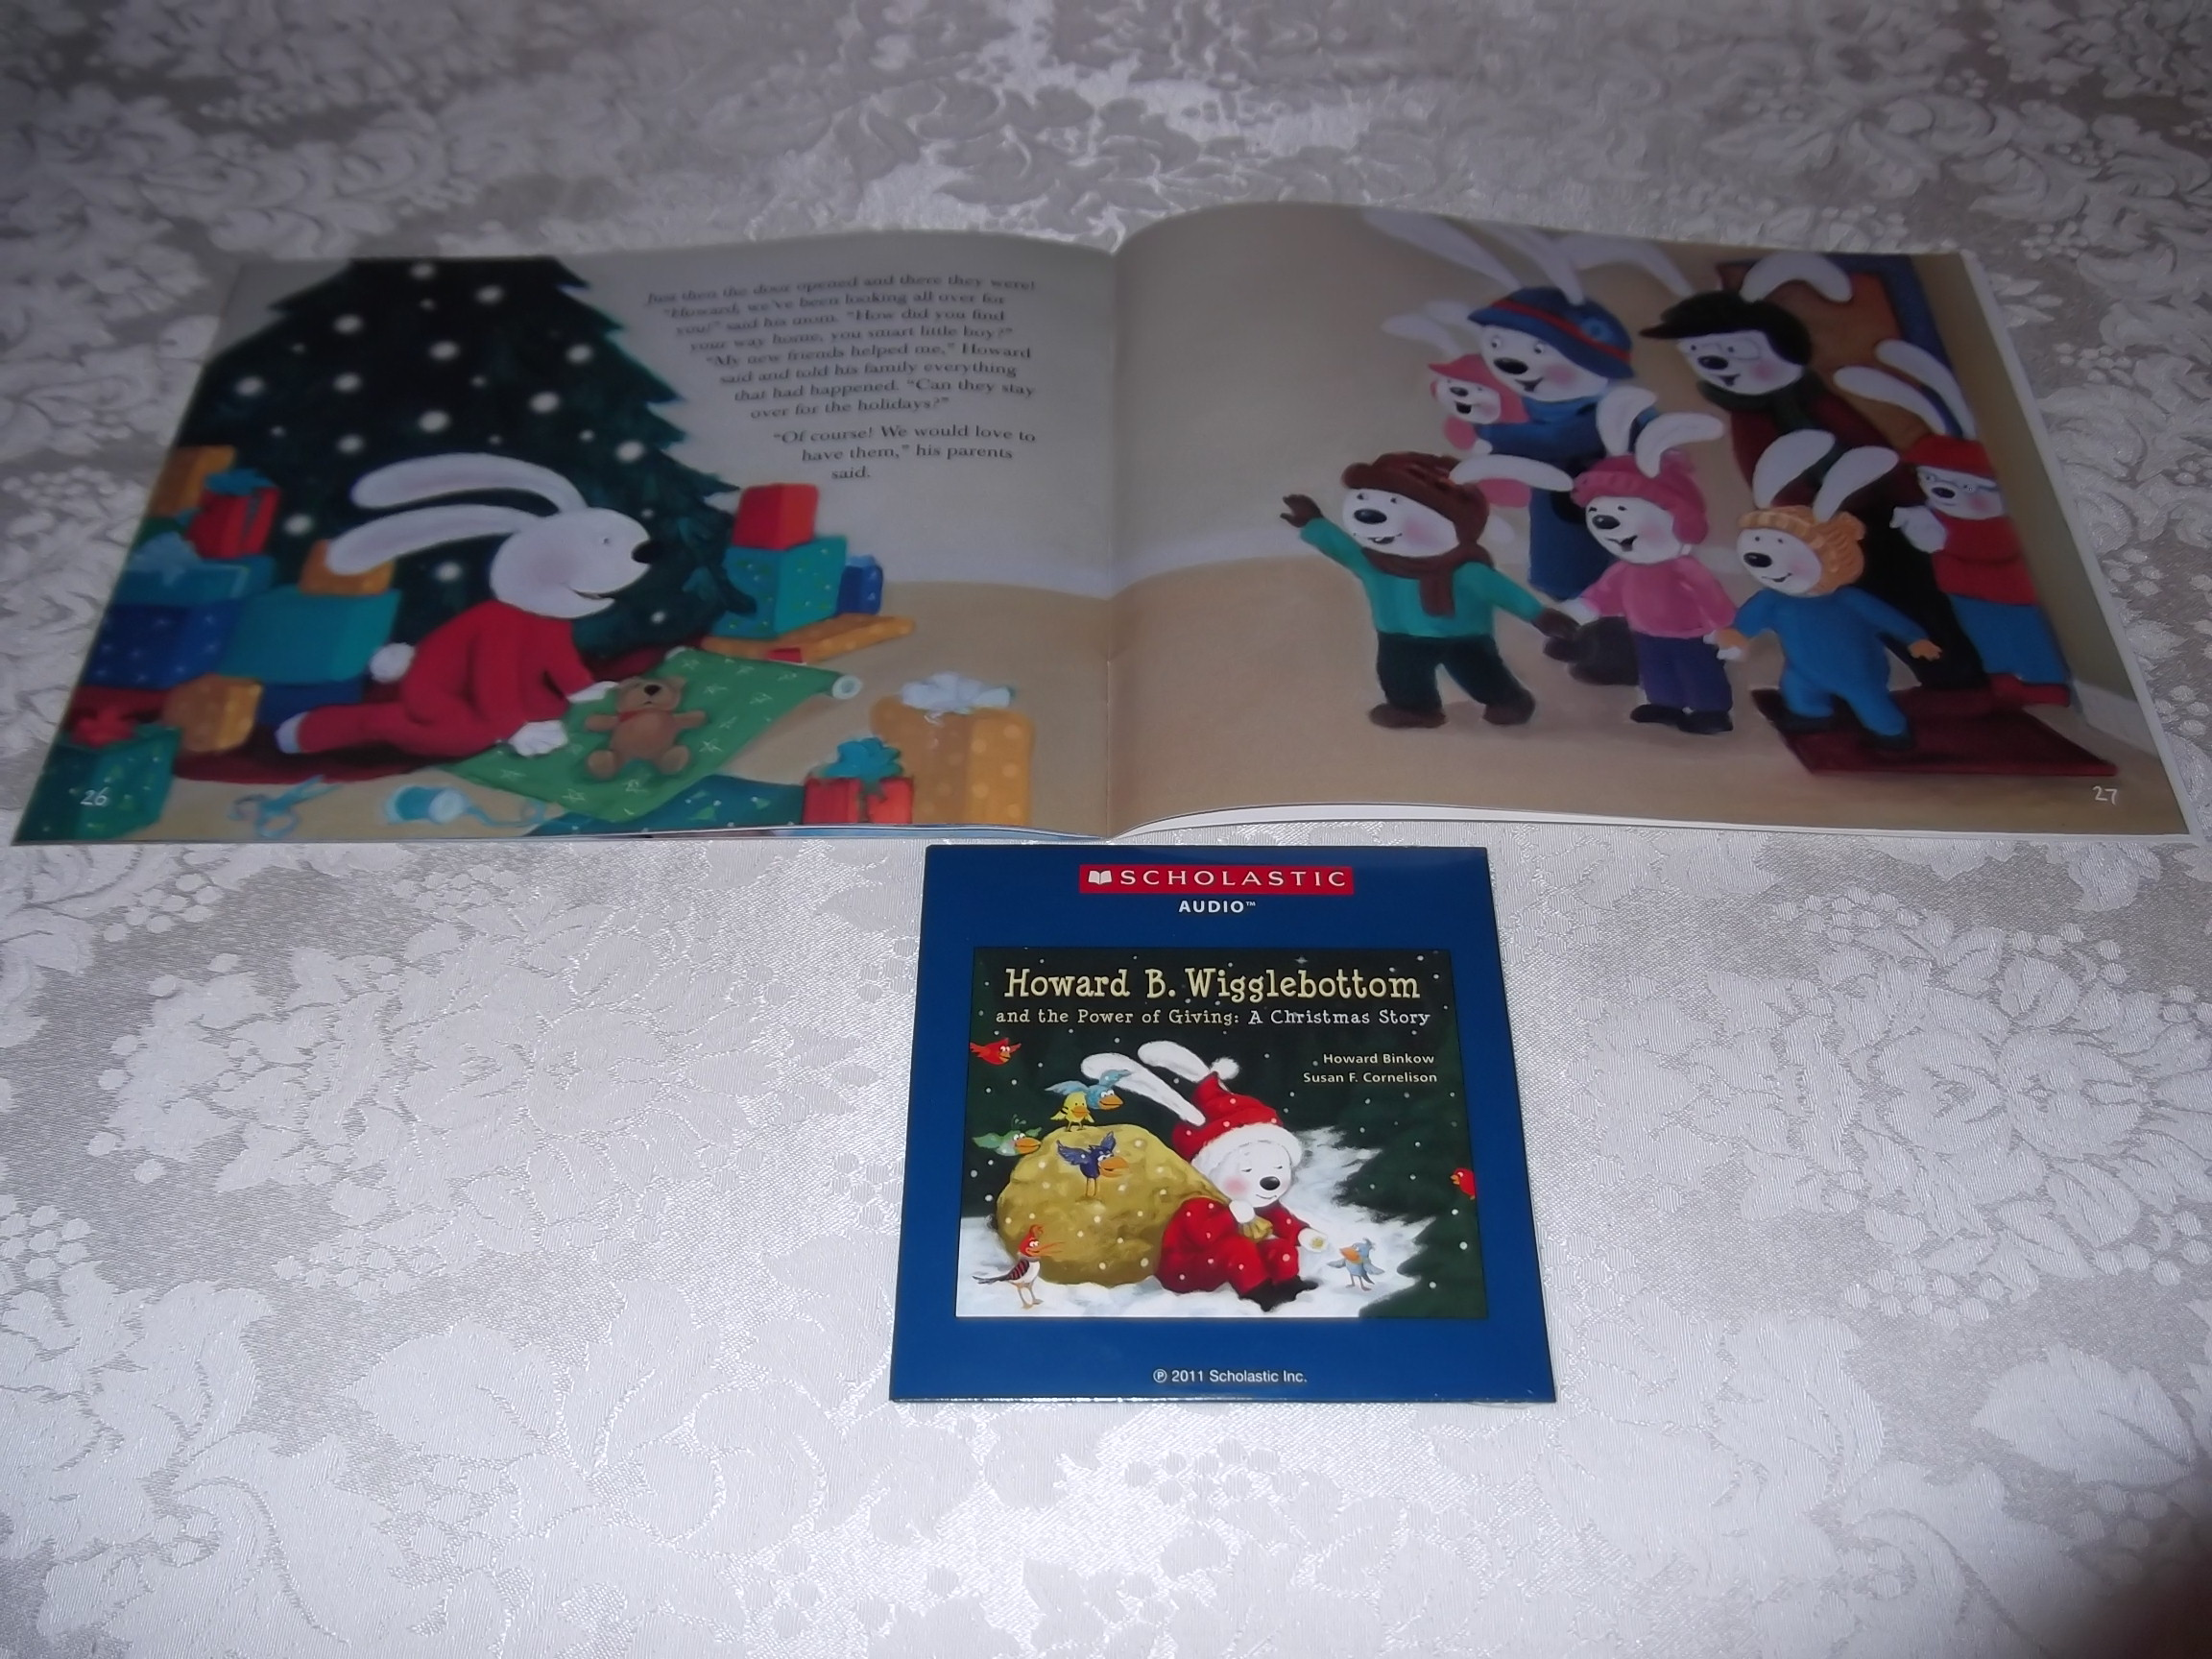 Image 3 of Howard B. Wigglebottom and the Power of Giving: A Christmas Story Audio CD & SC